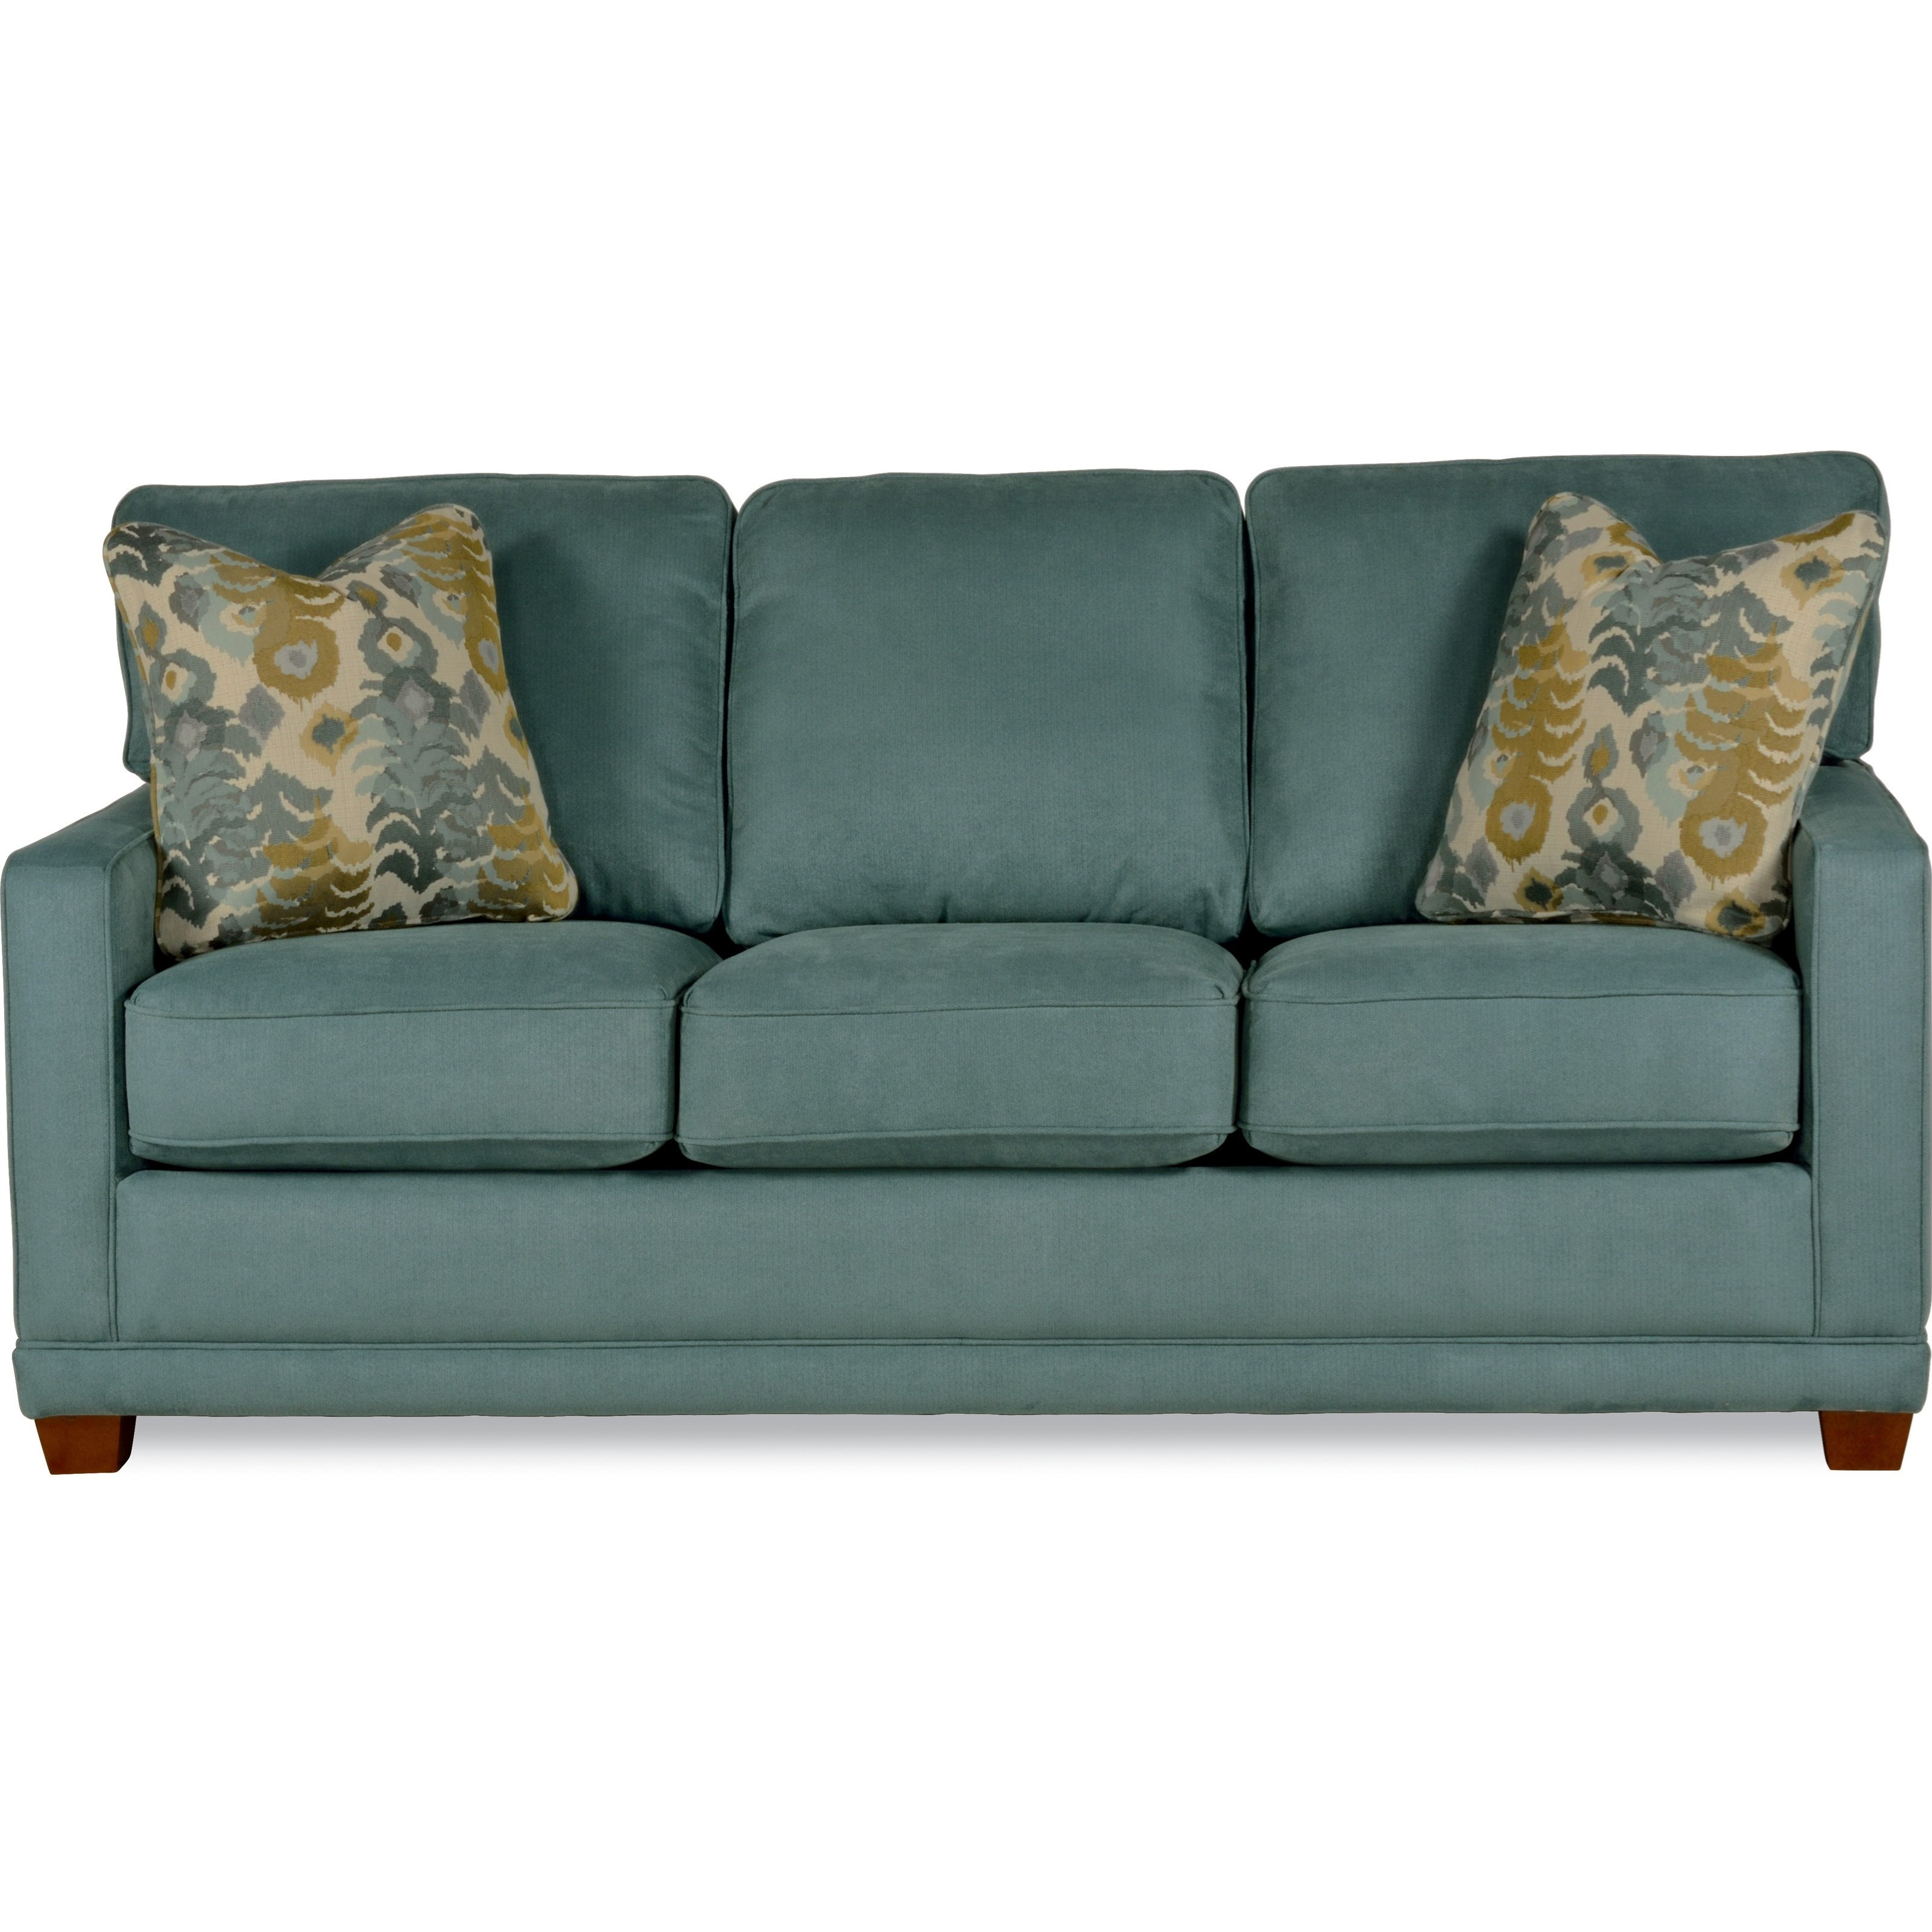 Transitional sofa with wood legs and welt cord by la z boy for Sofawelt outlet